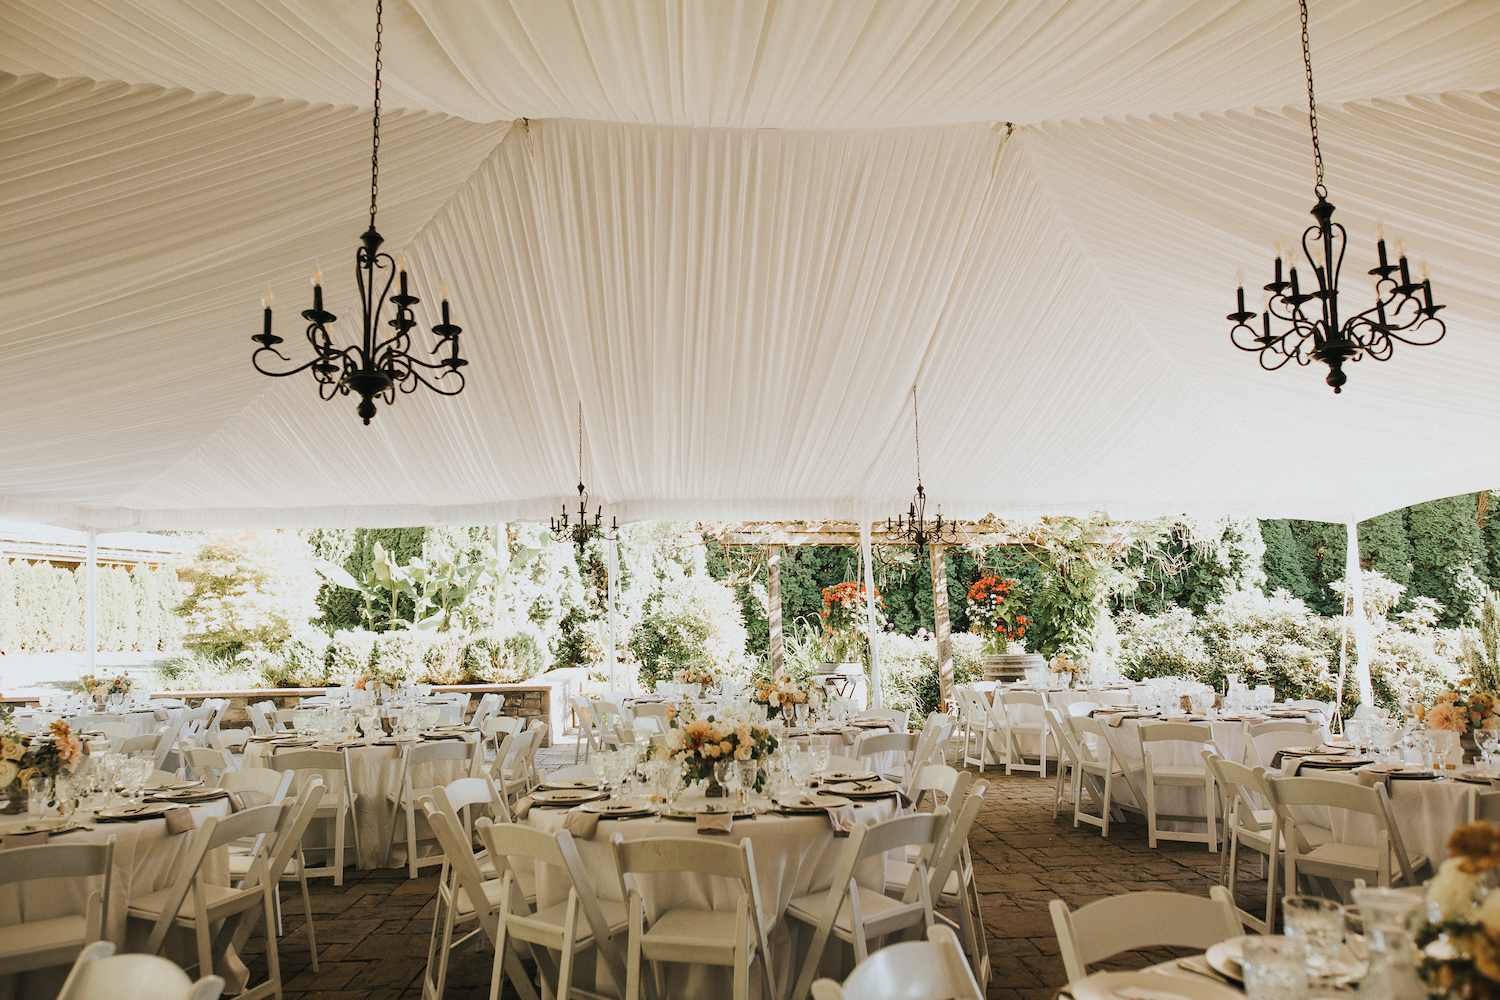 Wild Bloom Floral - Rachel Birkhofer Photography - Jessica and Phil - Real Wedding - Seattle 31.jpeg